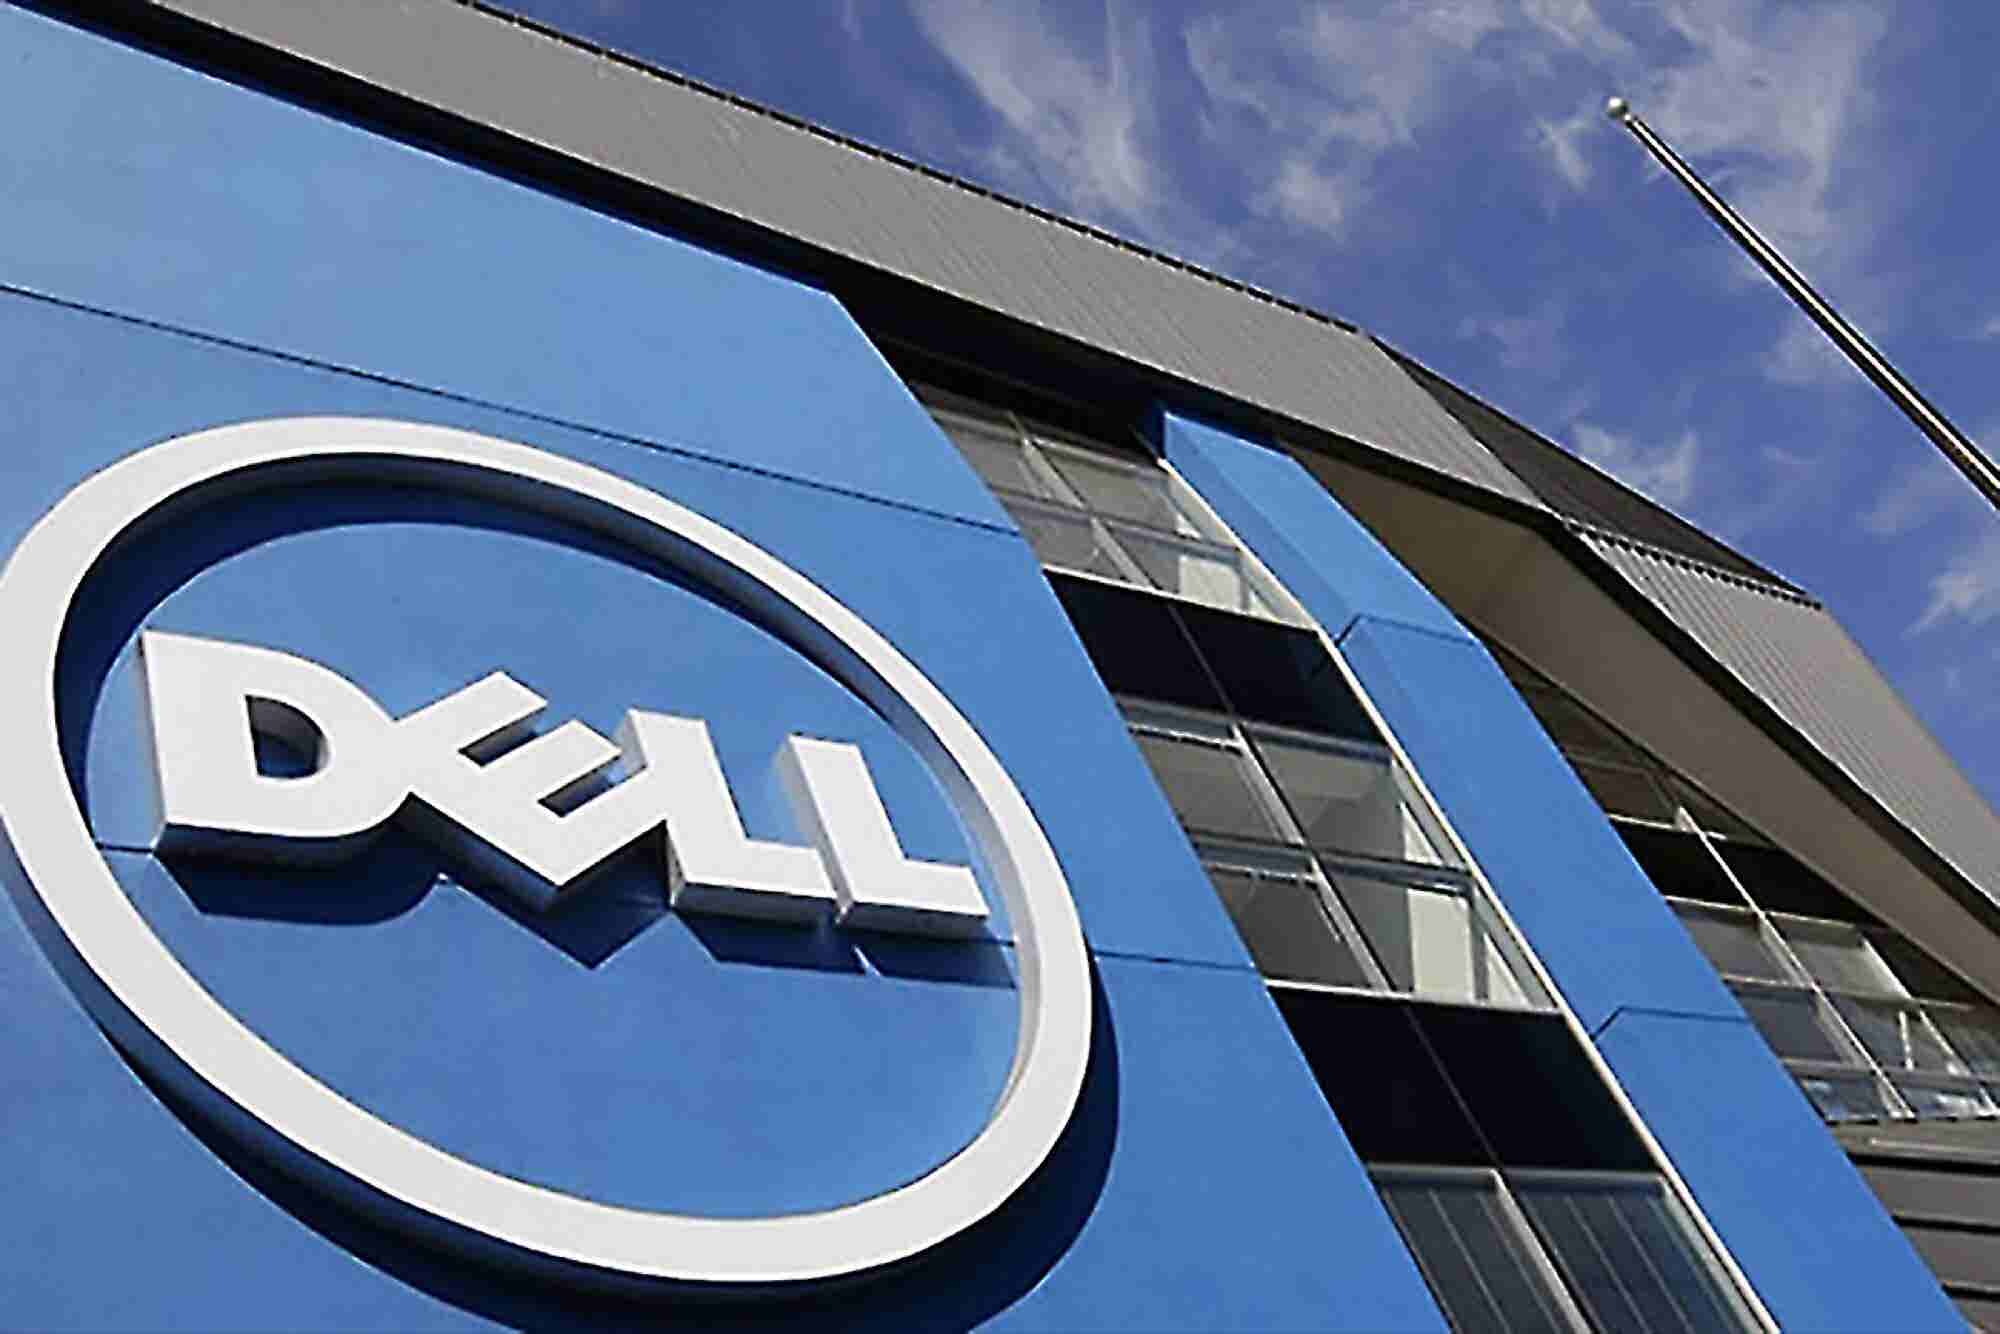 Done Deal: A Look at the Long, Contentious Road to Buying Dell Inc.